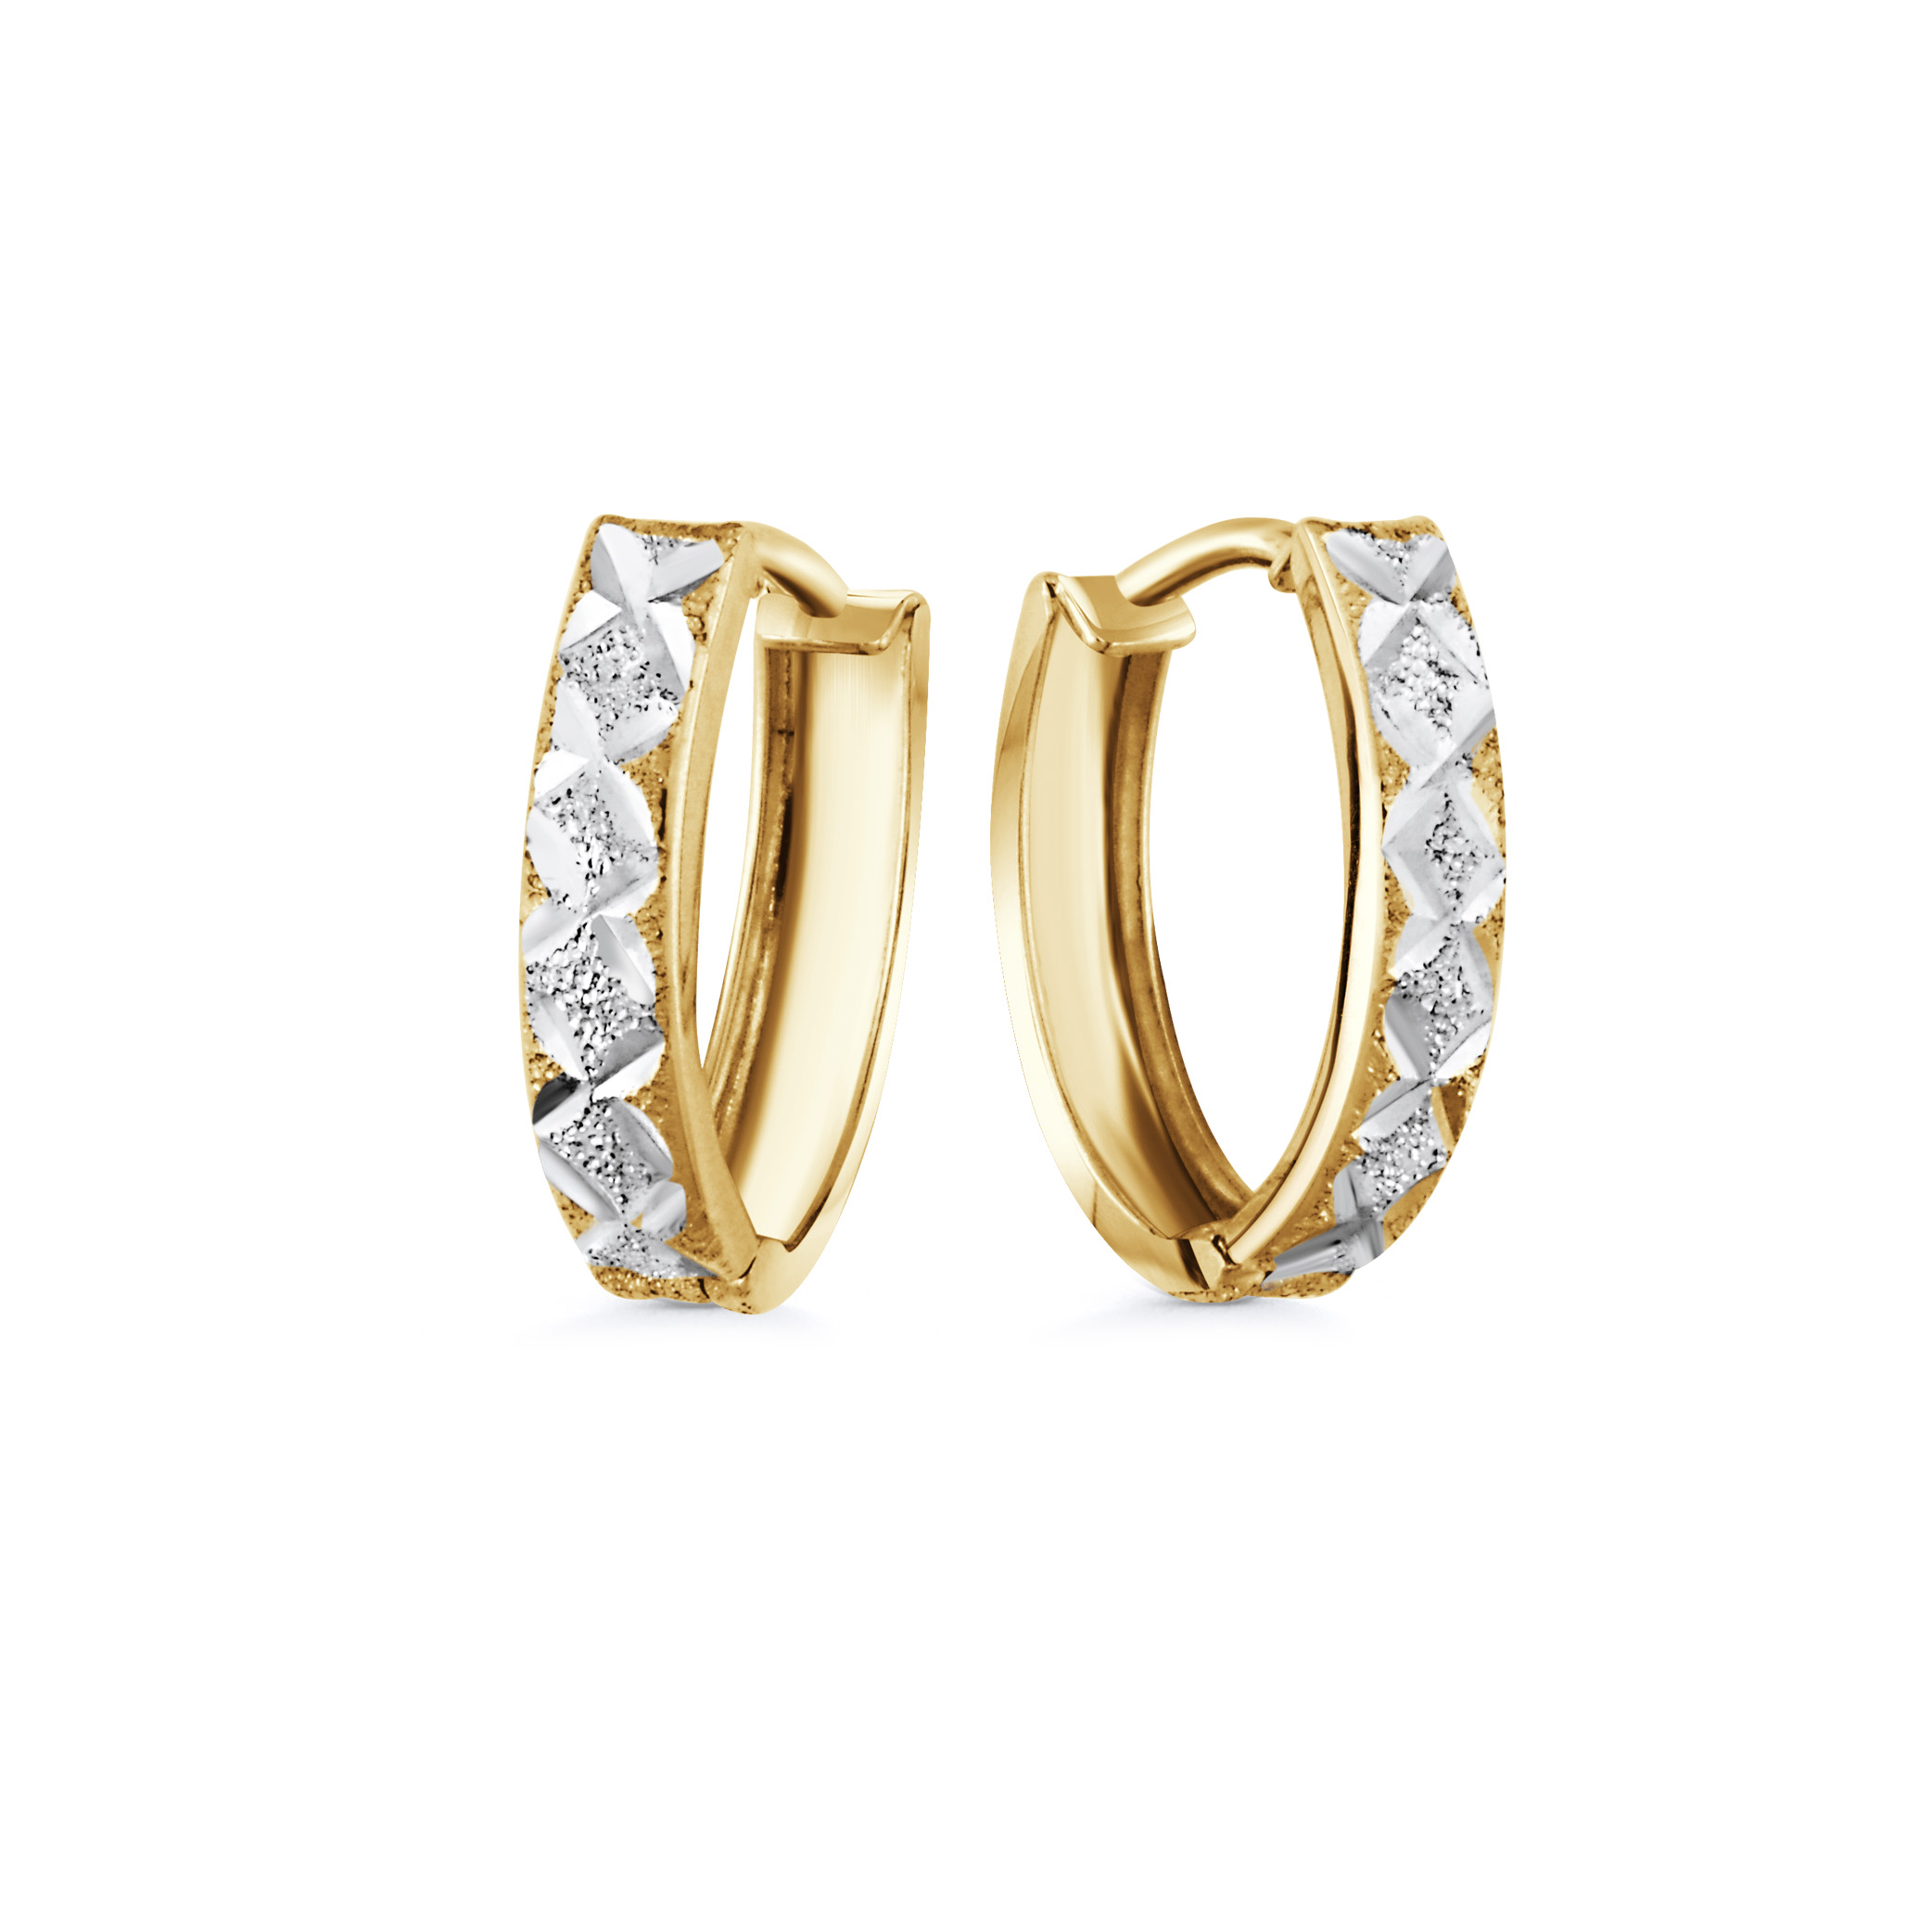 Huggies earrings for women - 10K 2-tone Gold (yellow and white)